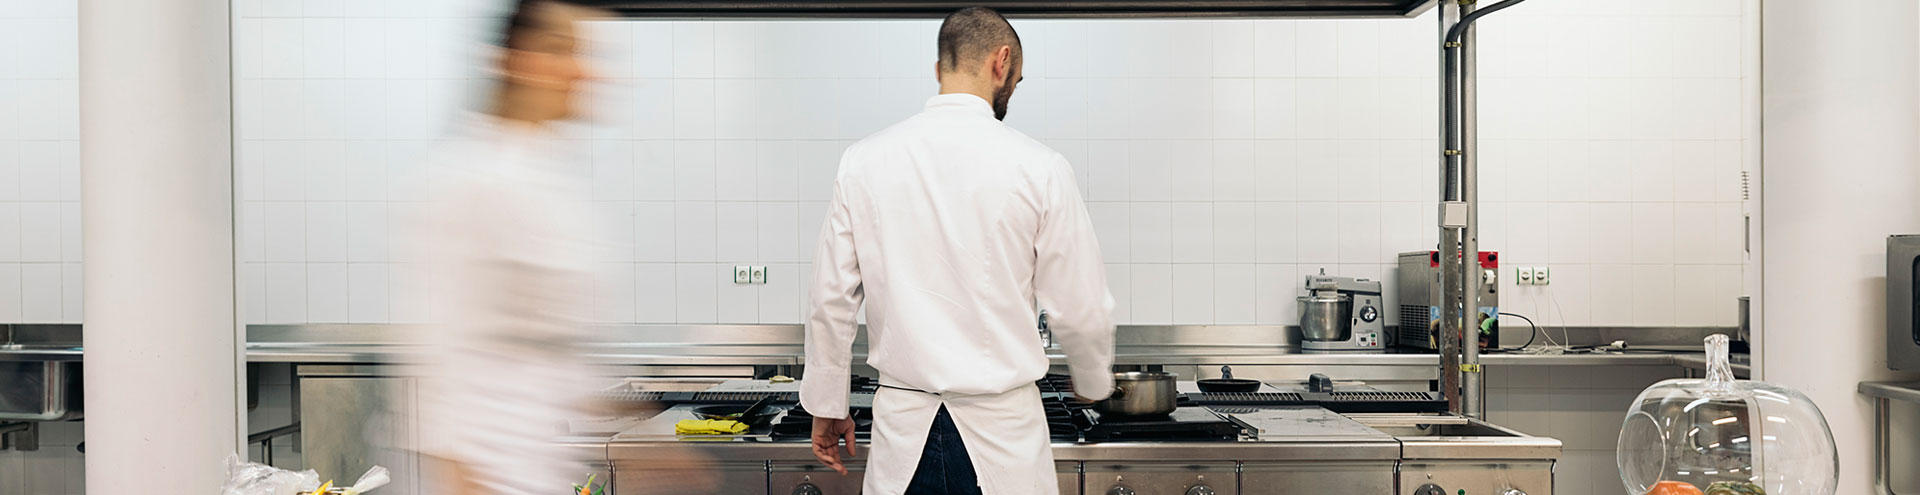 A chef with his back turned towards the camera cooking on a stove in front of while another chef passes behind.